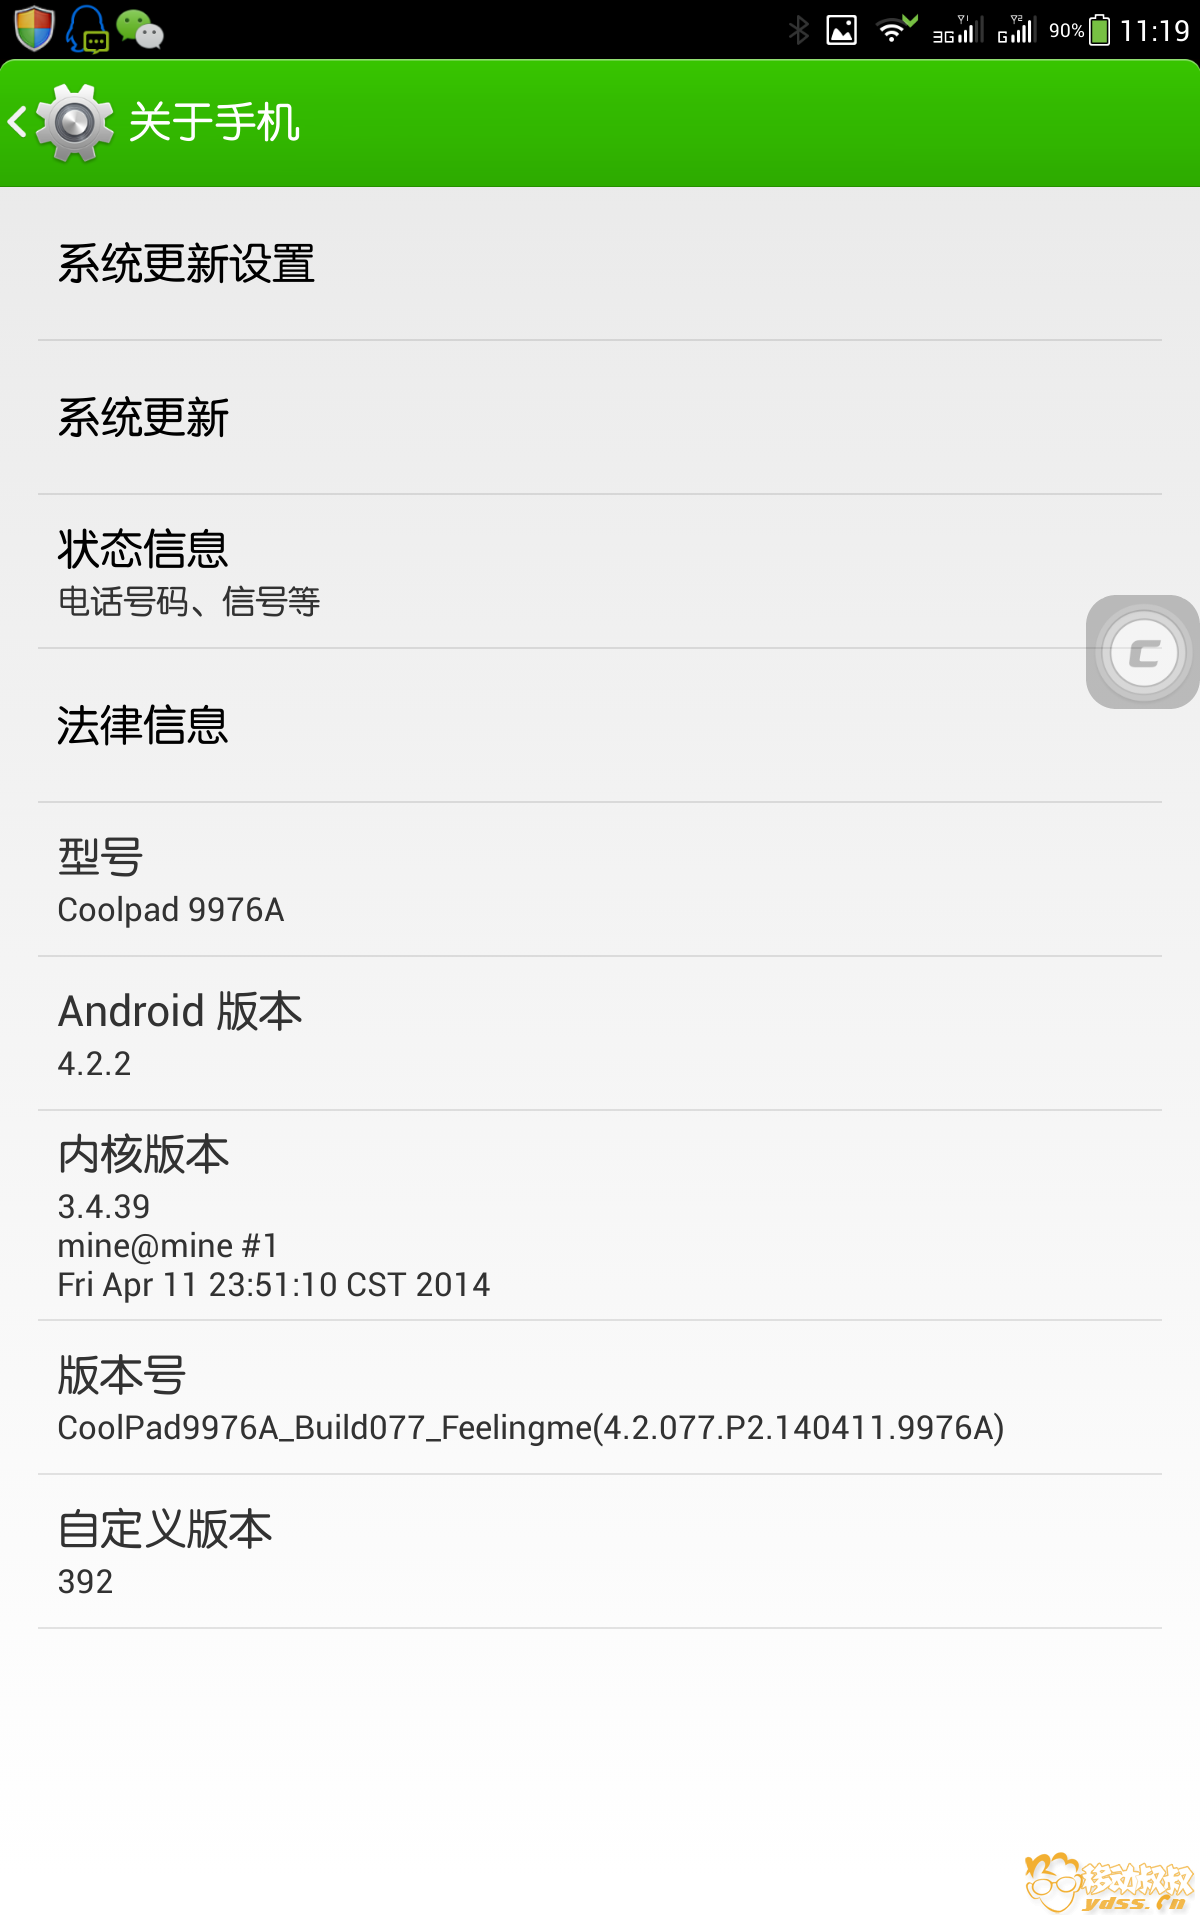 Screenshot_2014-04-14-11-19-44.png